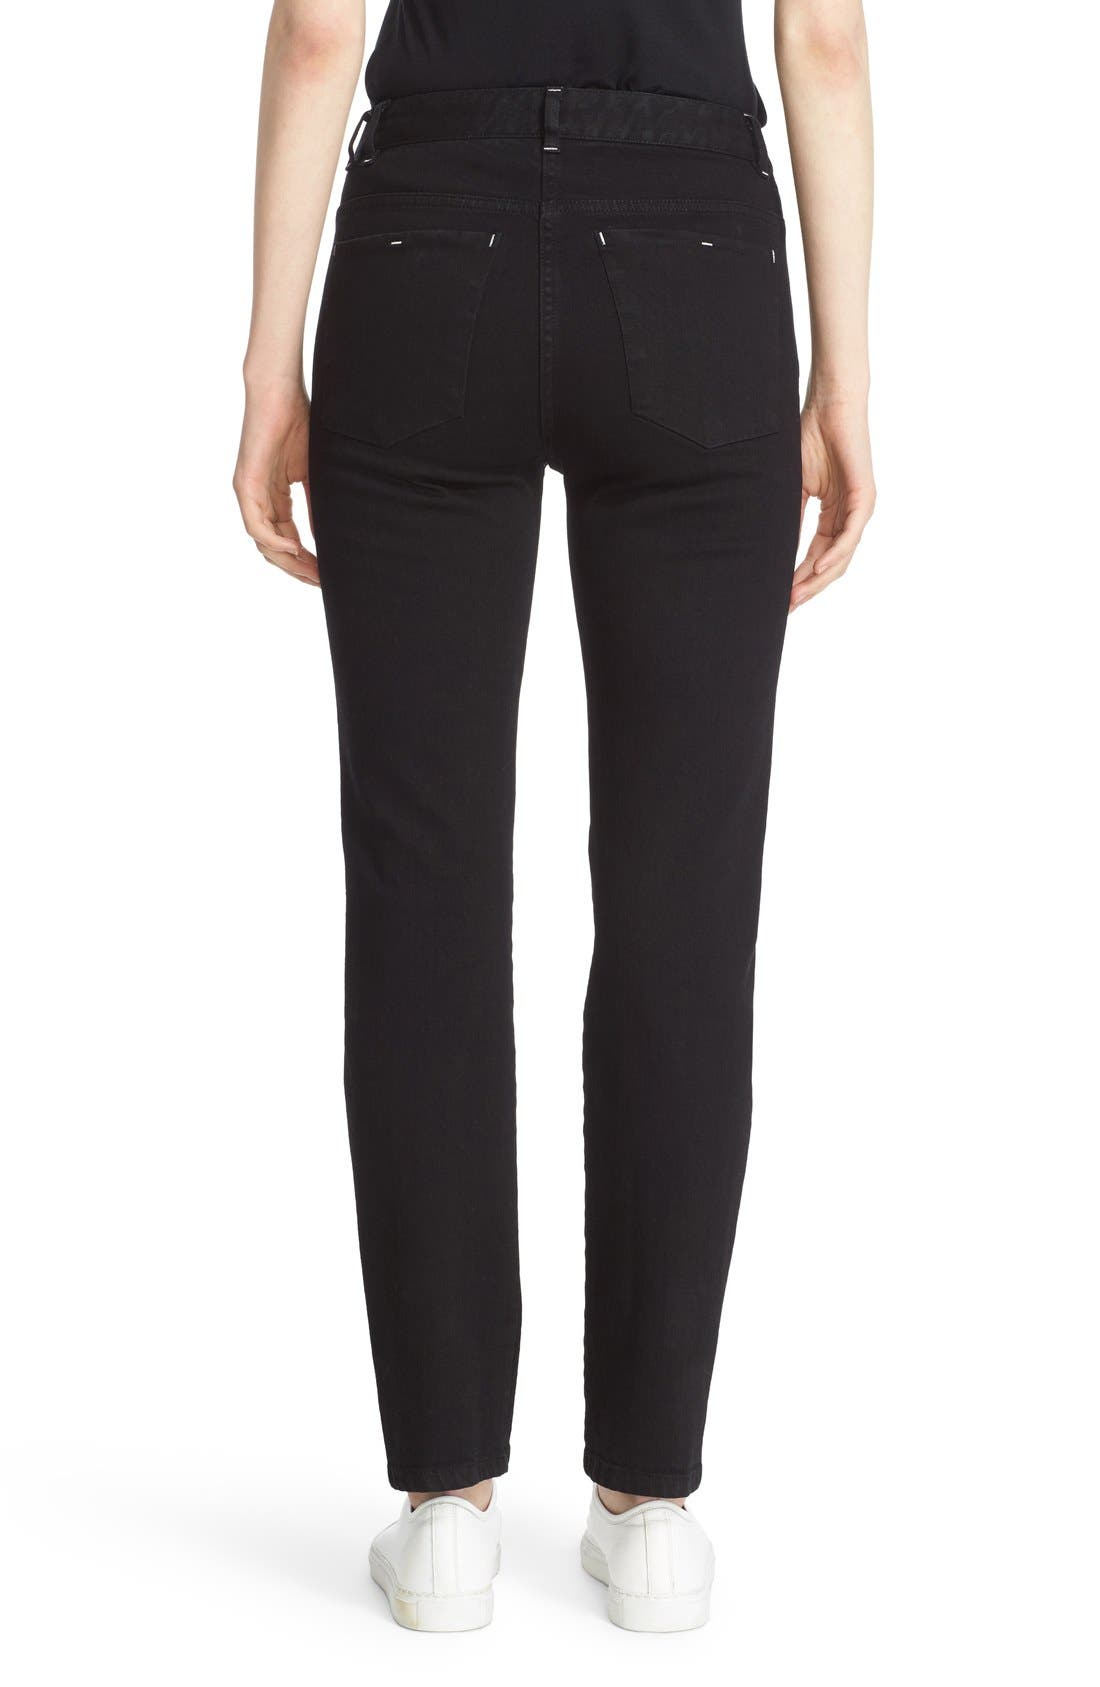 Stovepipe Stretch Jeans,                             Alternate thumbnail 2, color,                             001